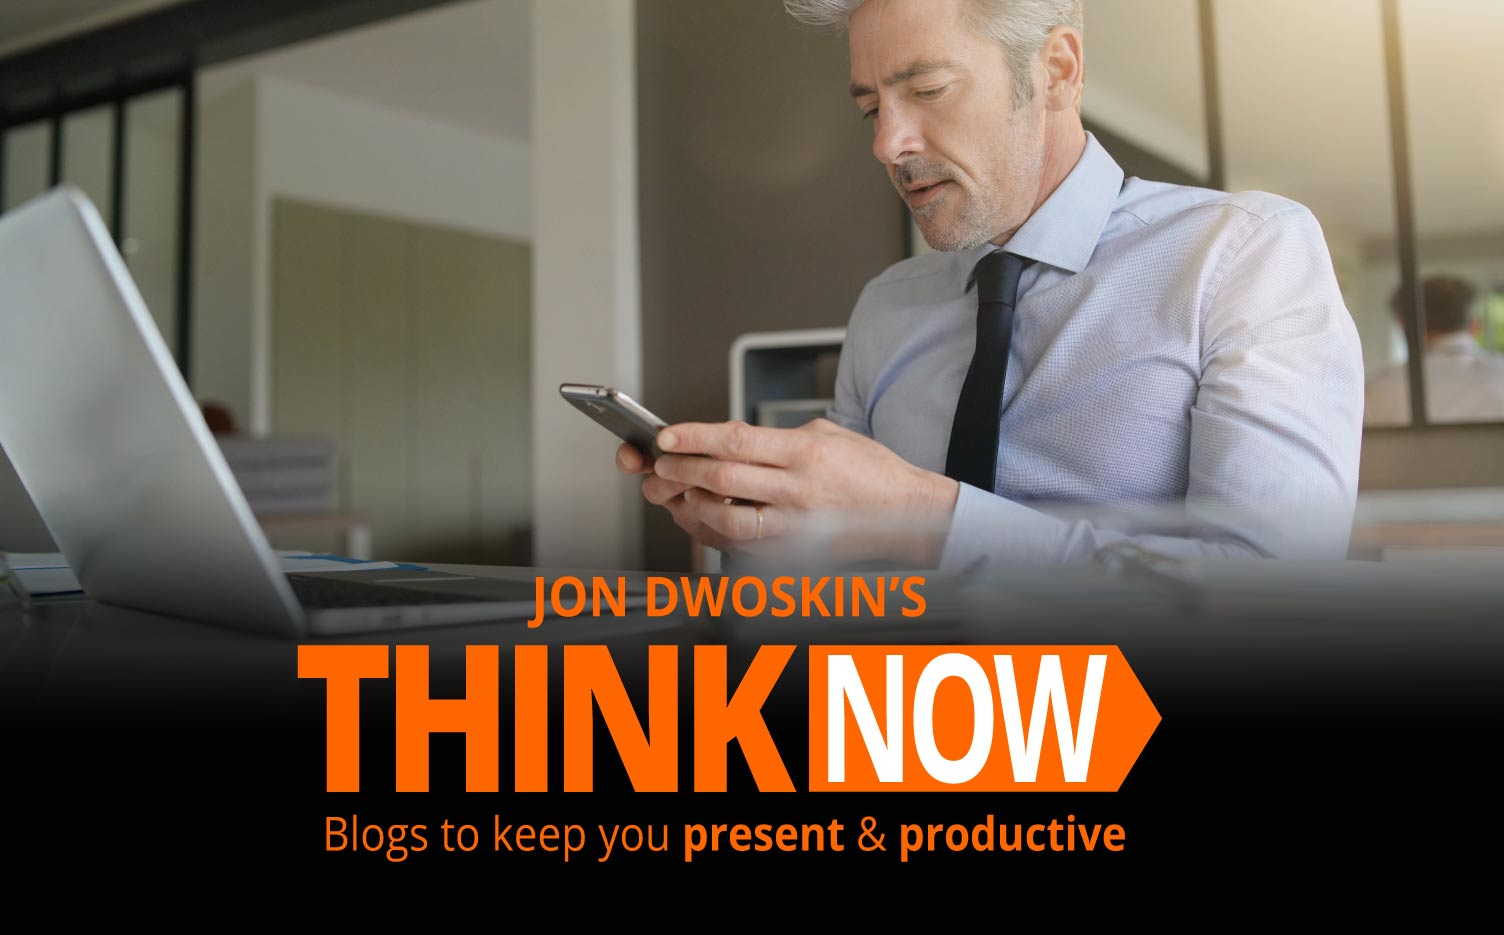 Jon Dwoskin's THINK NOW Blog: Learning to be Effective while Working Remotely